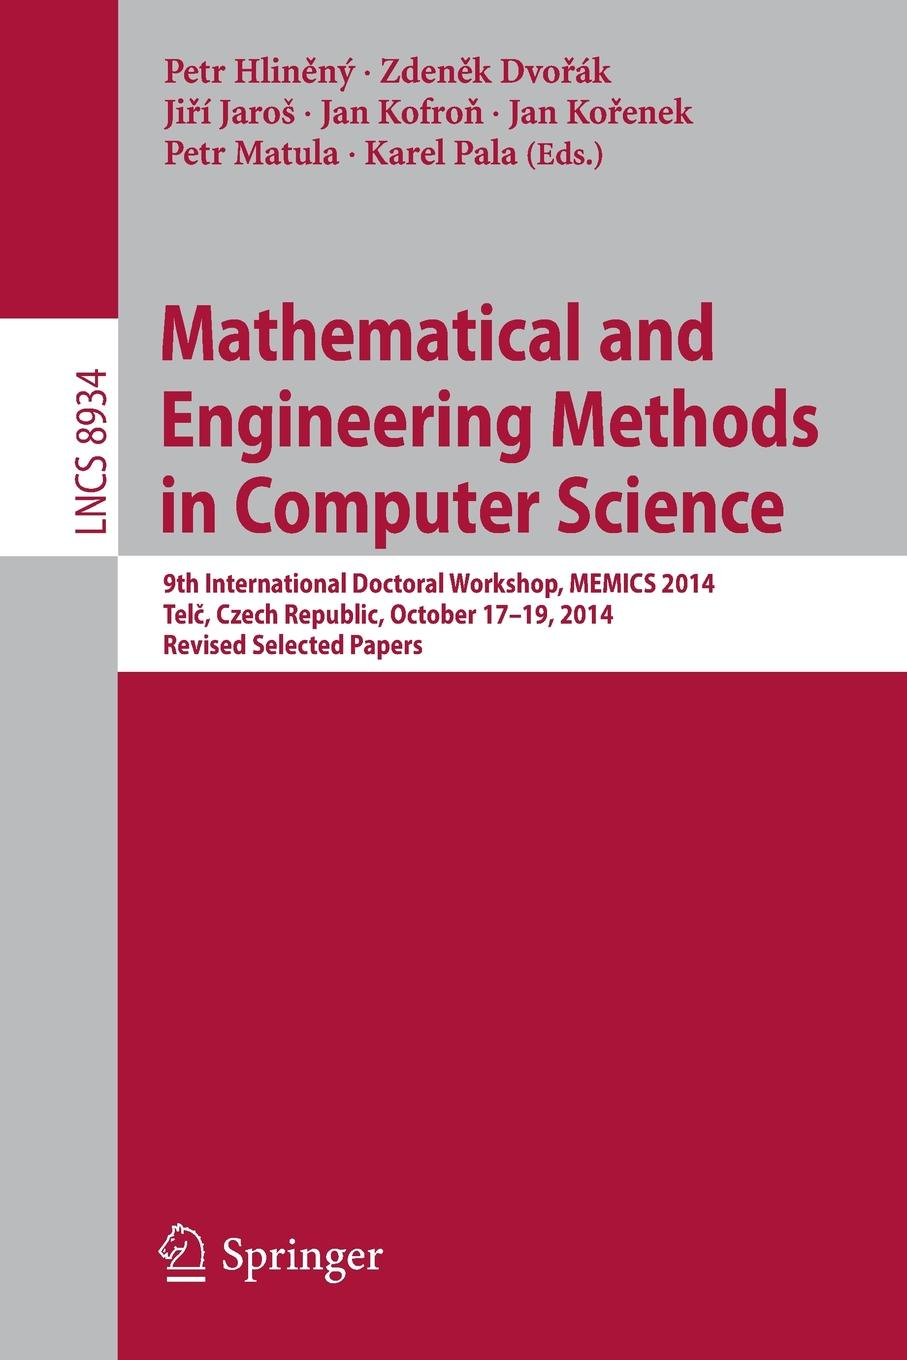 Mathematical and Engineering Methods in Computer Science. 9th International Doctoral Workshop, MEMICS 2014, Telc, Czech Republic, October 17--19, 2014, Revised Selected Papers цена и фото